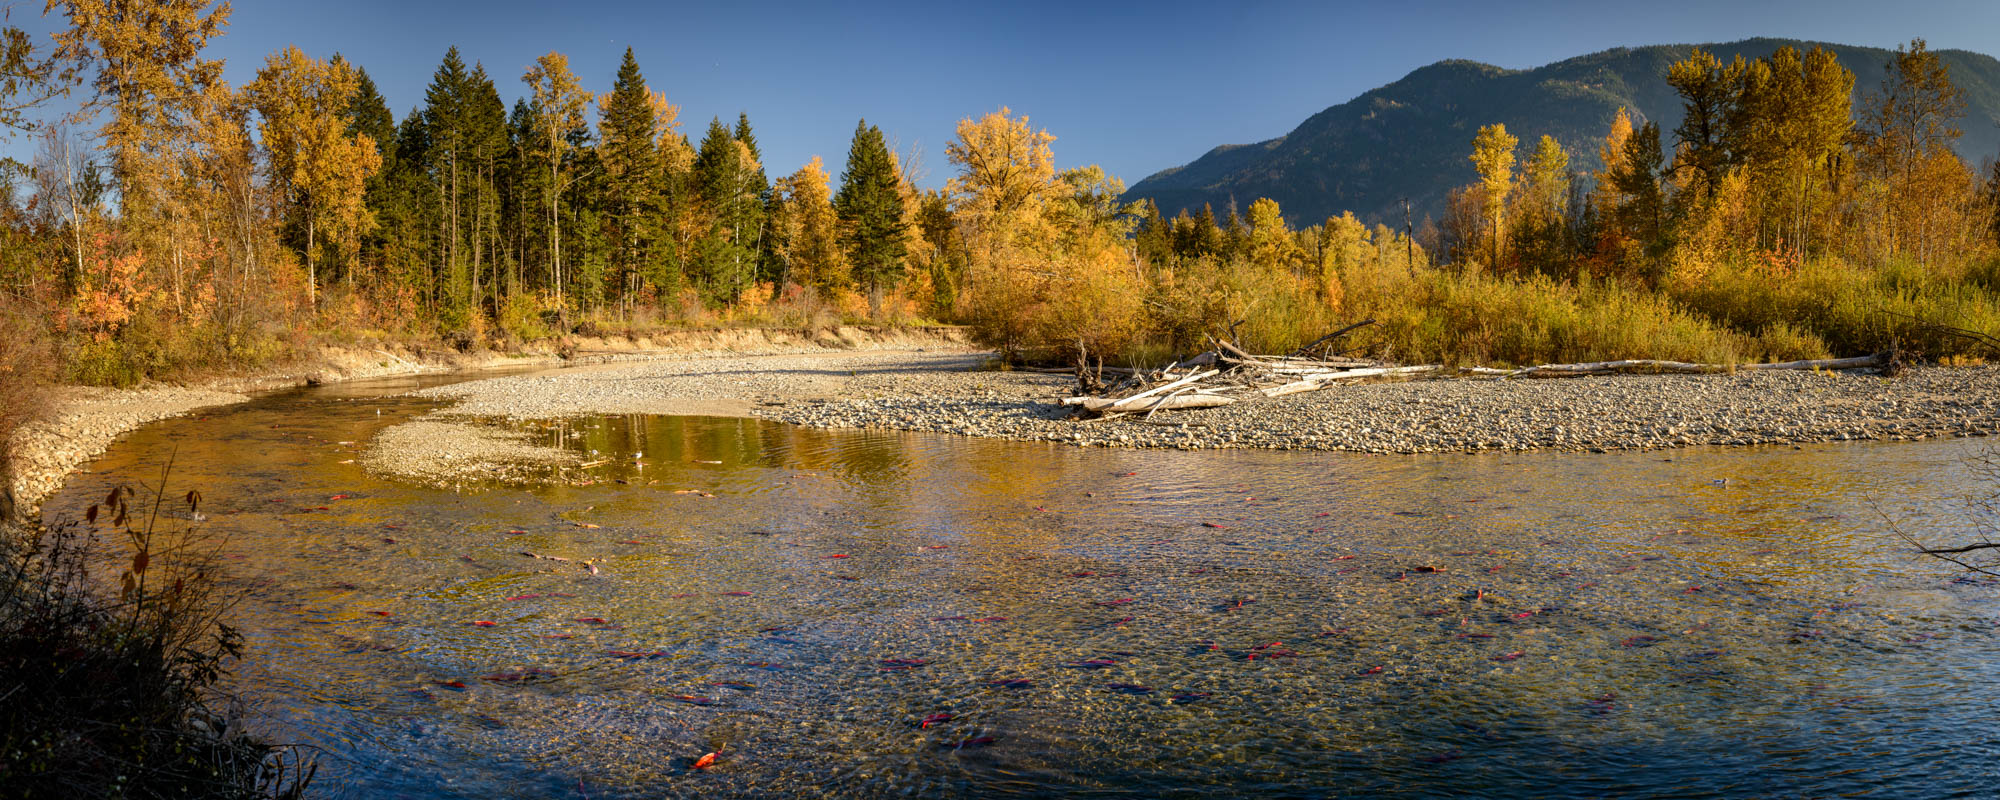 Super high resolution image of sockeye salmon in the Adams River